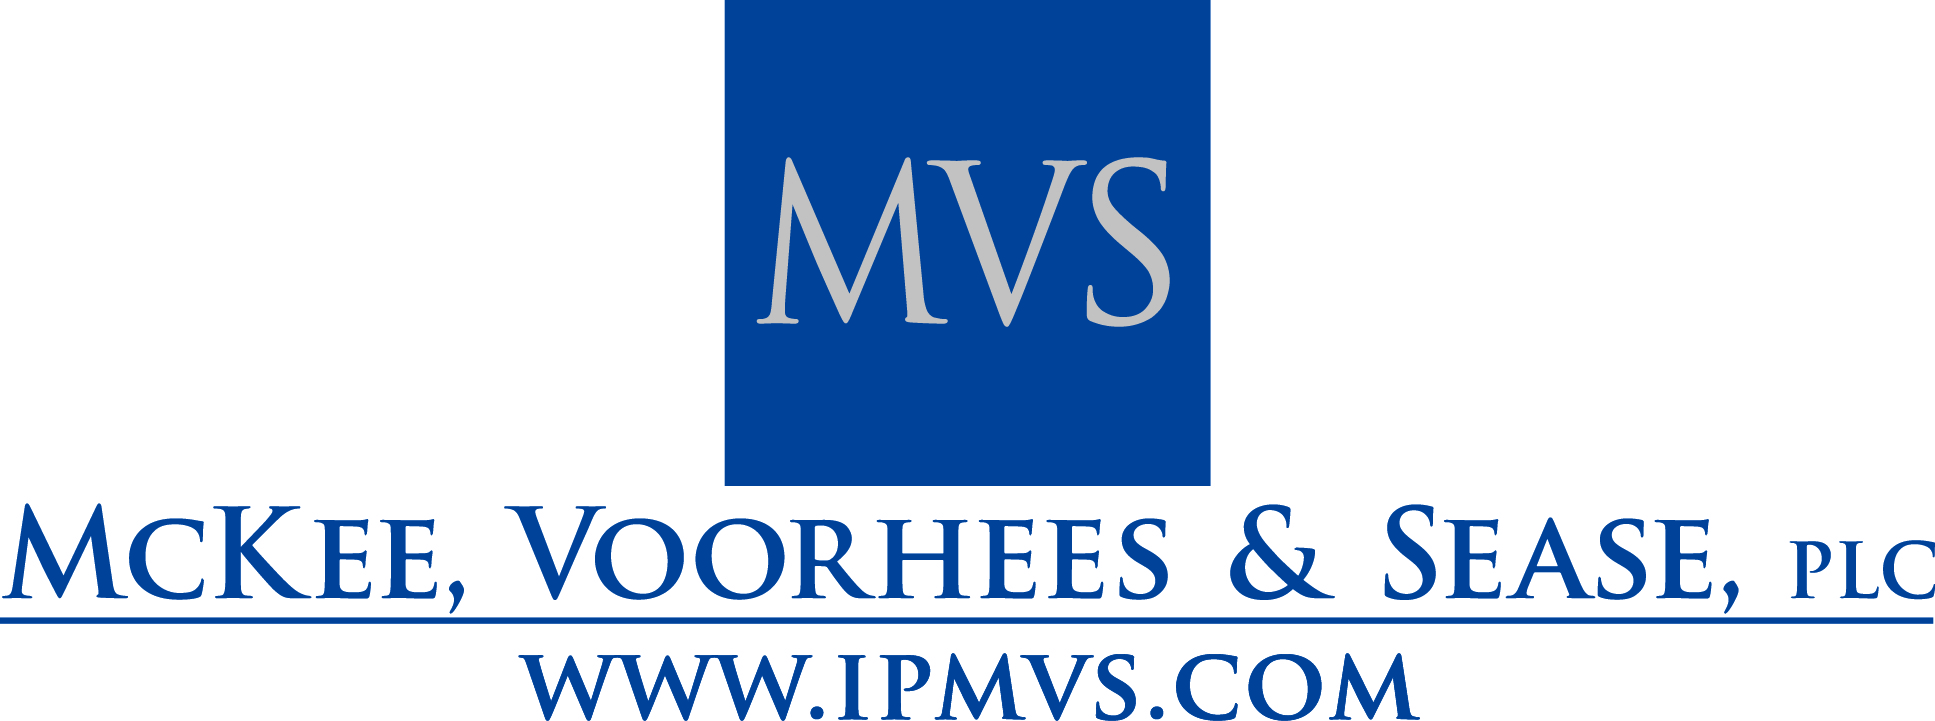 MVS blue logo - centered with website - stacked